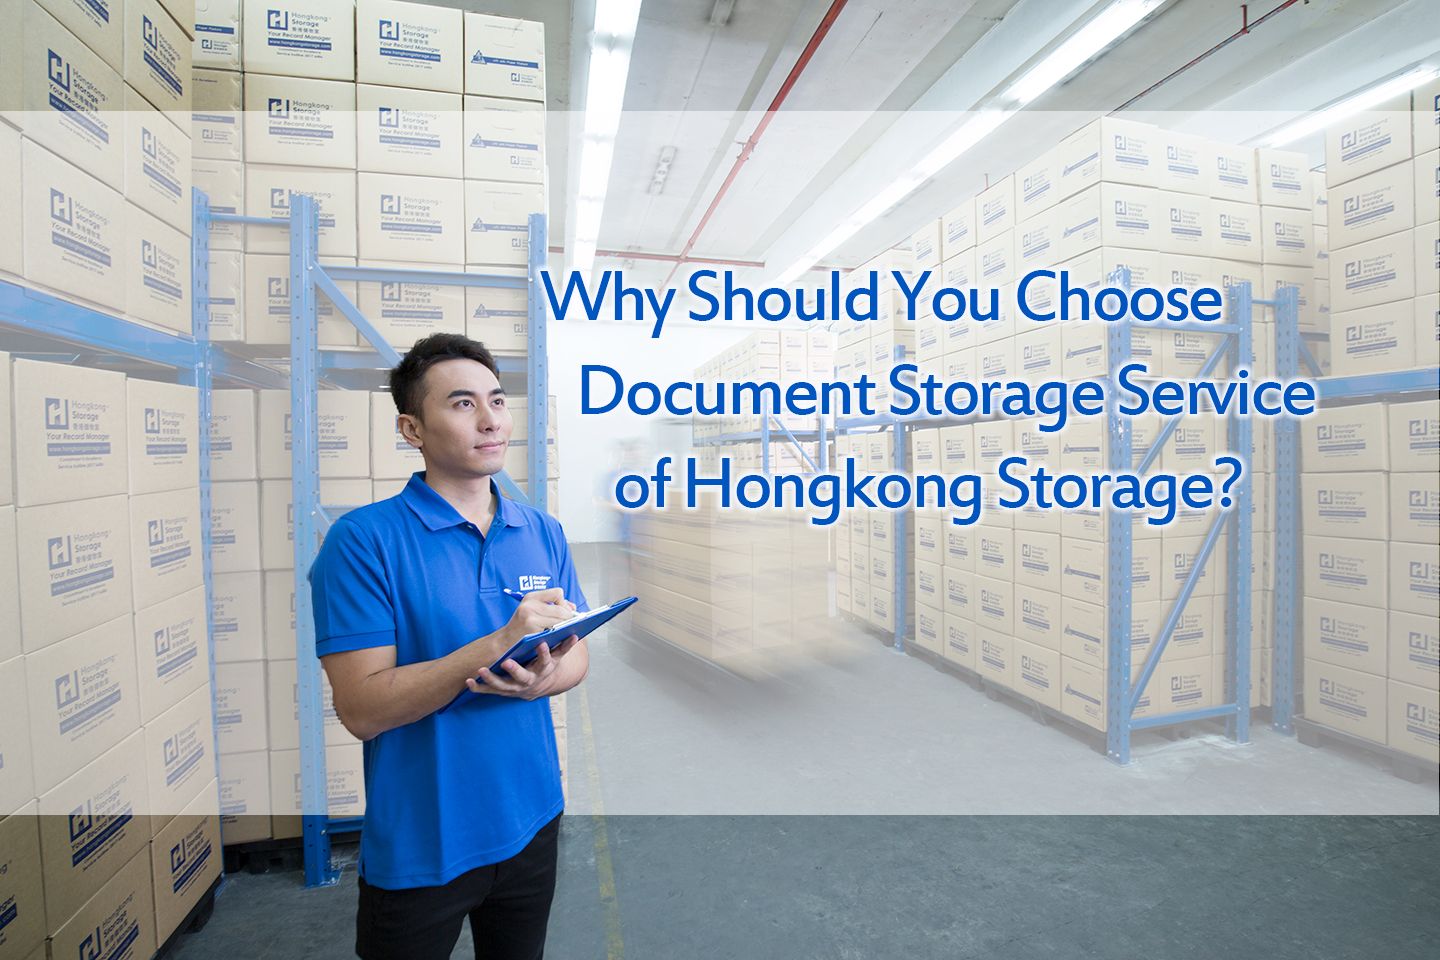 Why Should You Choose Document Storage Service Of Hongkong. Rehab Facilities In Ohio Craigslist Sf Trucks. Financial Services Market Daily Mail News Uk. Top Accounting Software Systems. Scholarship Websites For College. Muskegon Family Care Dental Movers Vienna Va. It Service Desk Software Comparison. Moving Companies Killeen Tx Laptops Intel I3. Lpn To Rn Bridge Programs In Florida